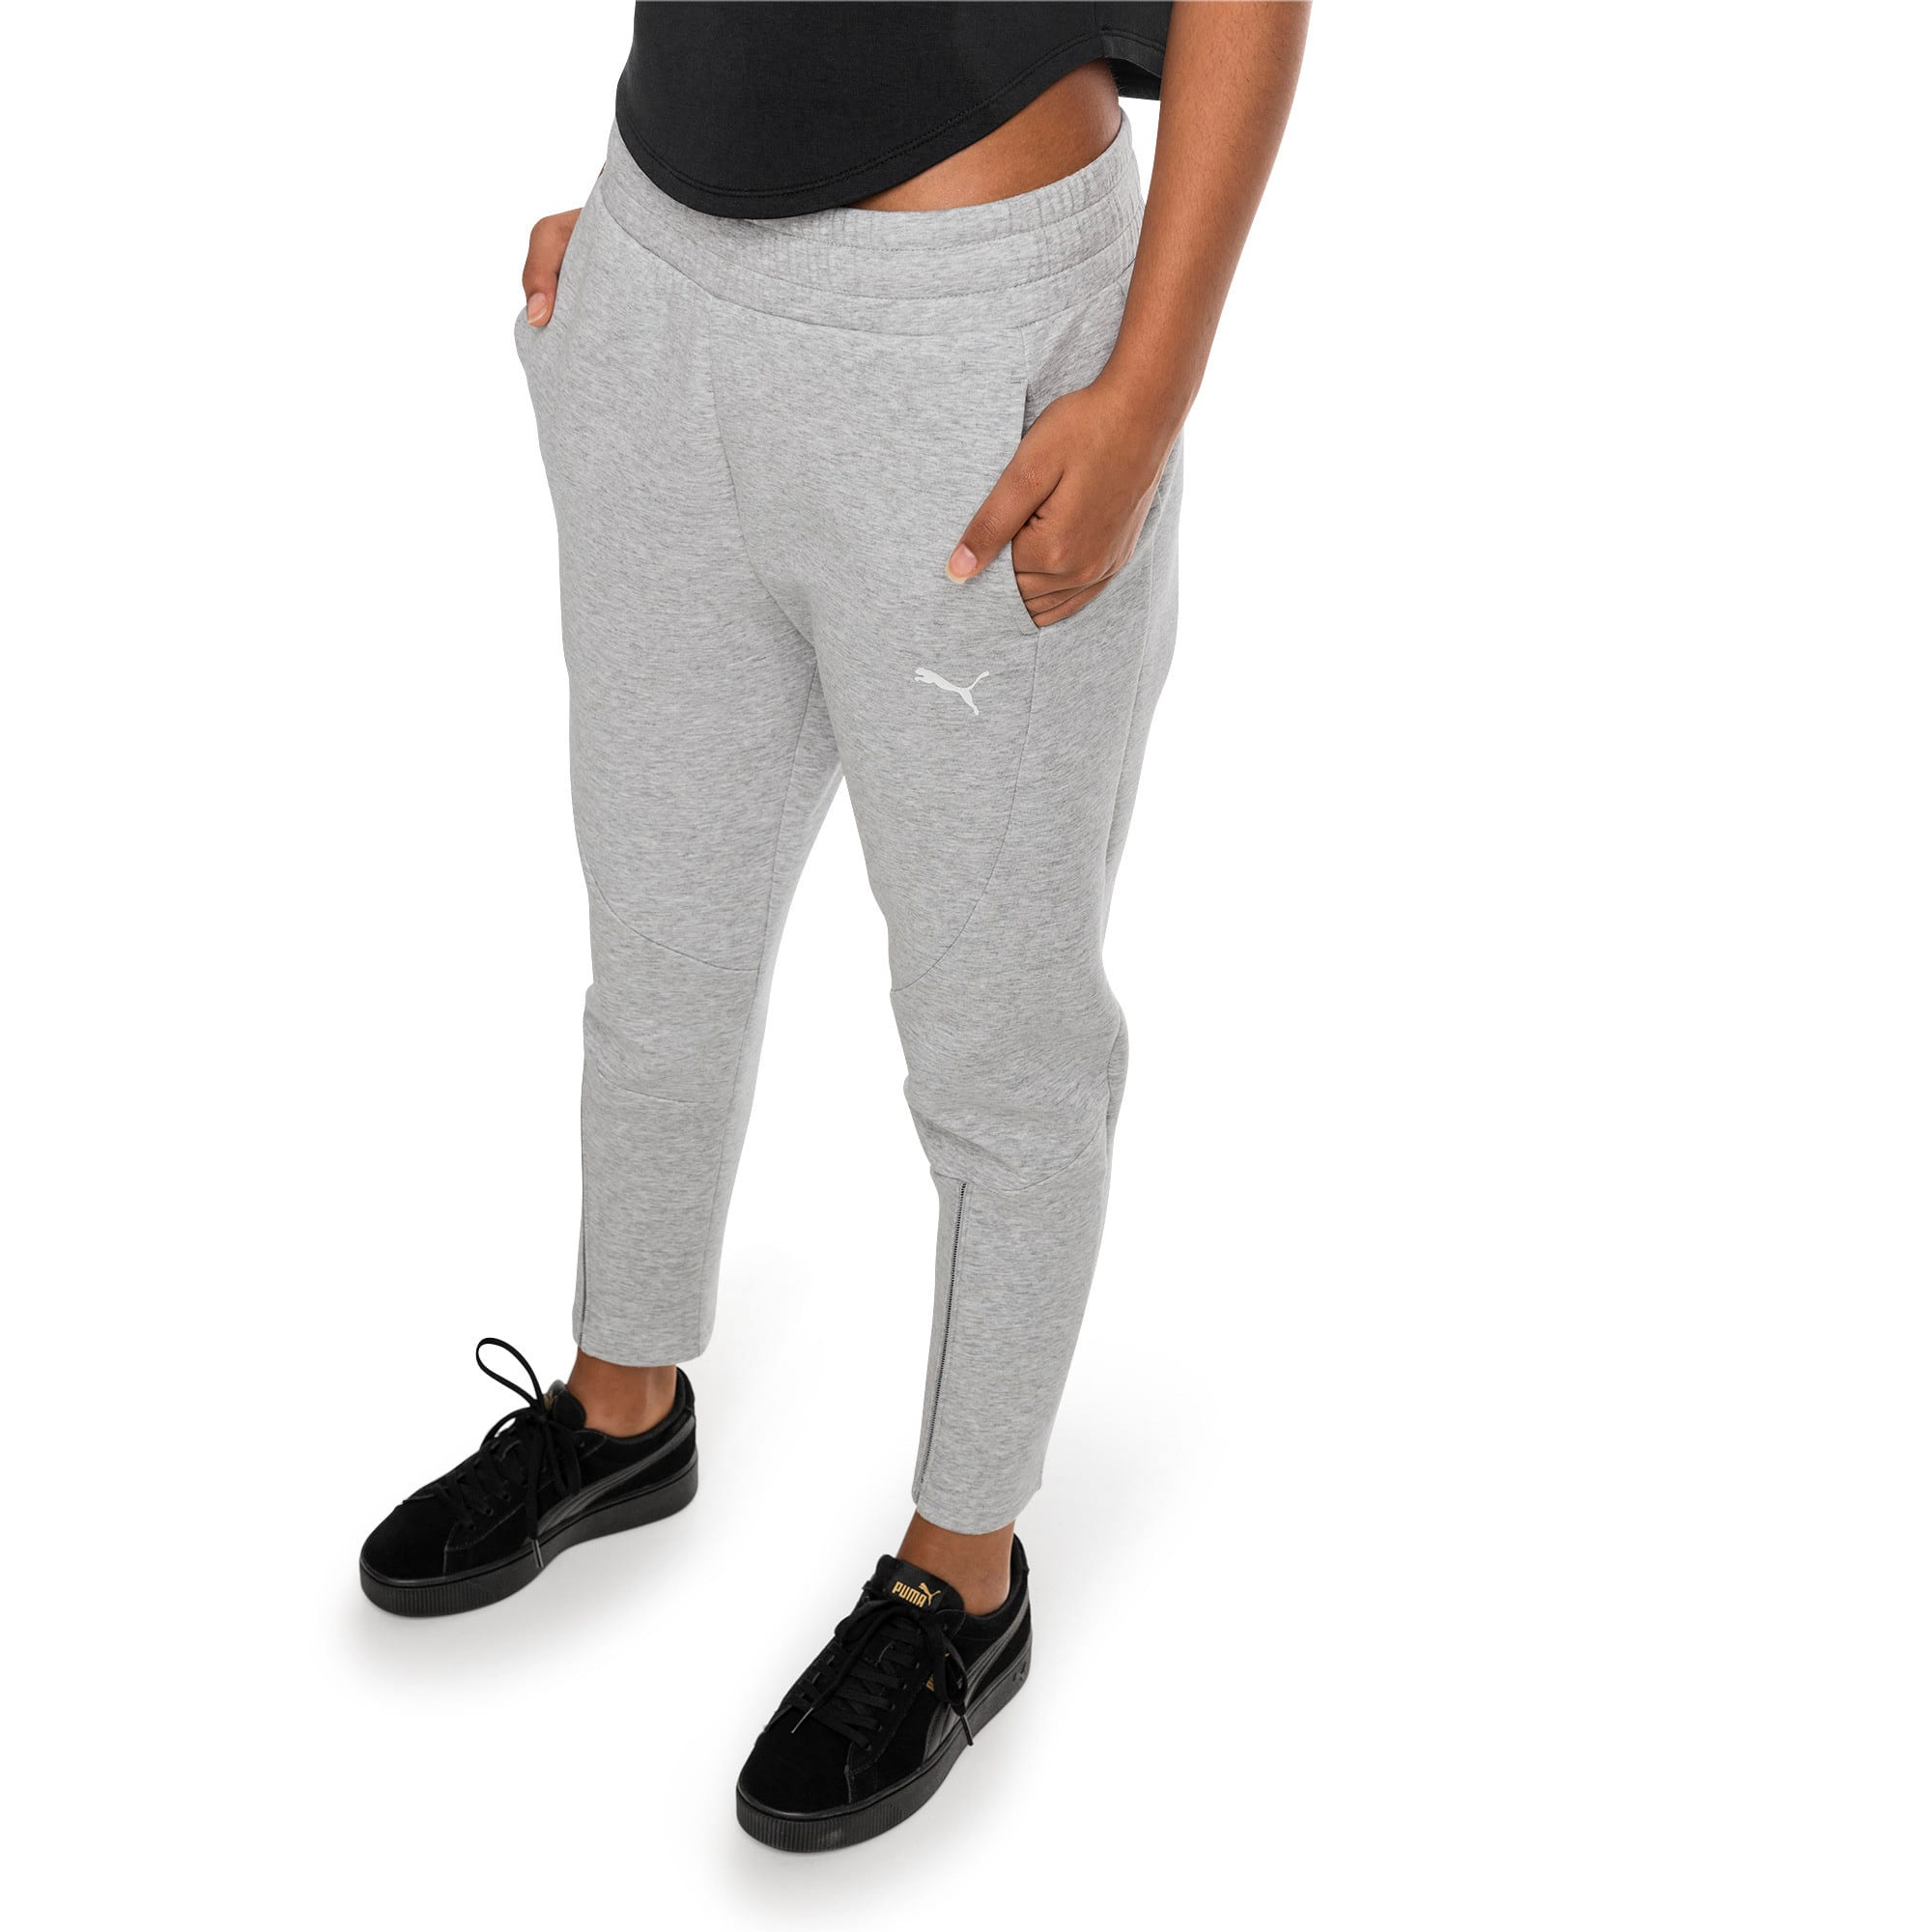 Thumbnail 1 of Pantalon Evostripe Move pour femme, Light Gray Heather, medium